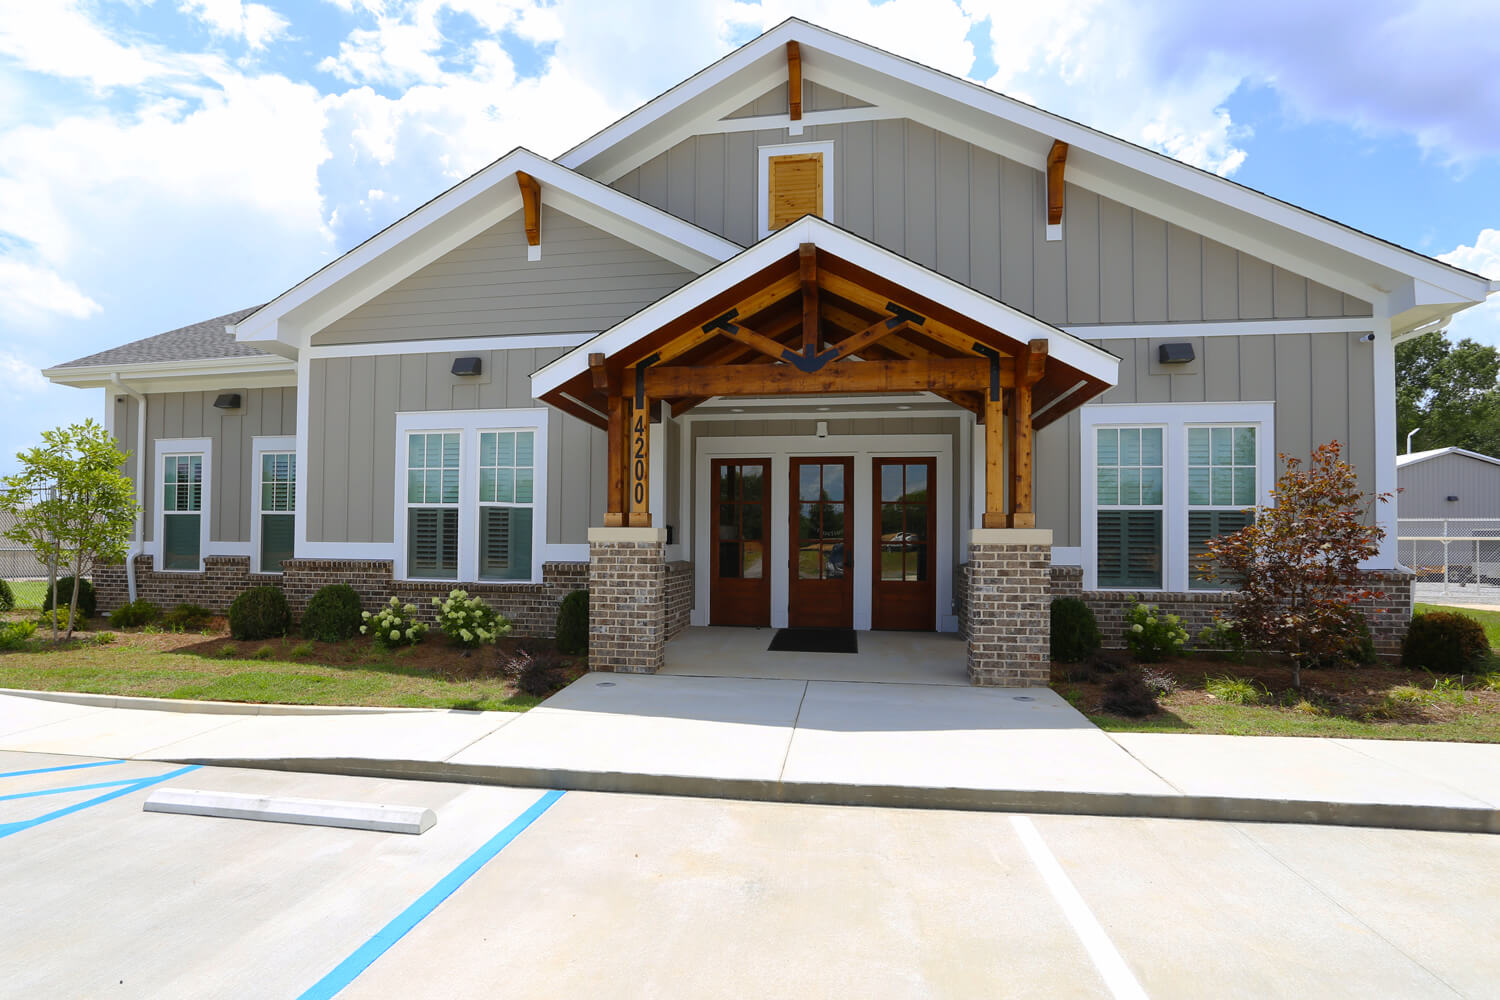 Johnson Office - Front Elevation - Designed by Foshee Architecture